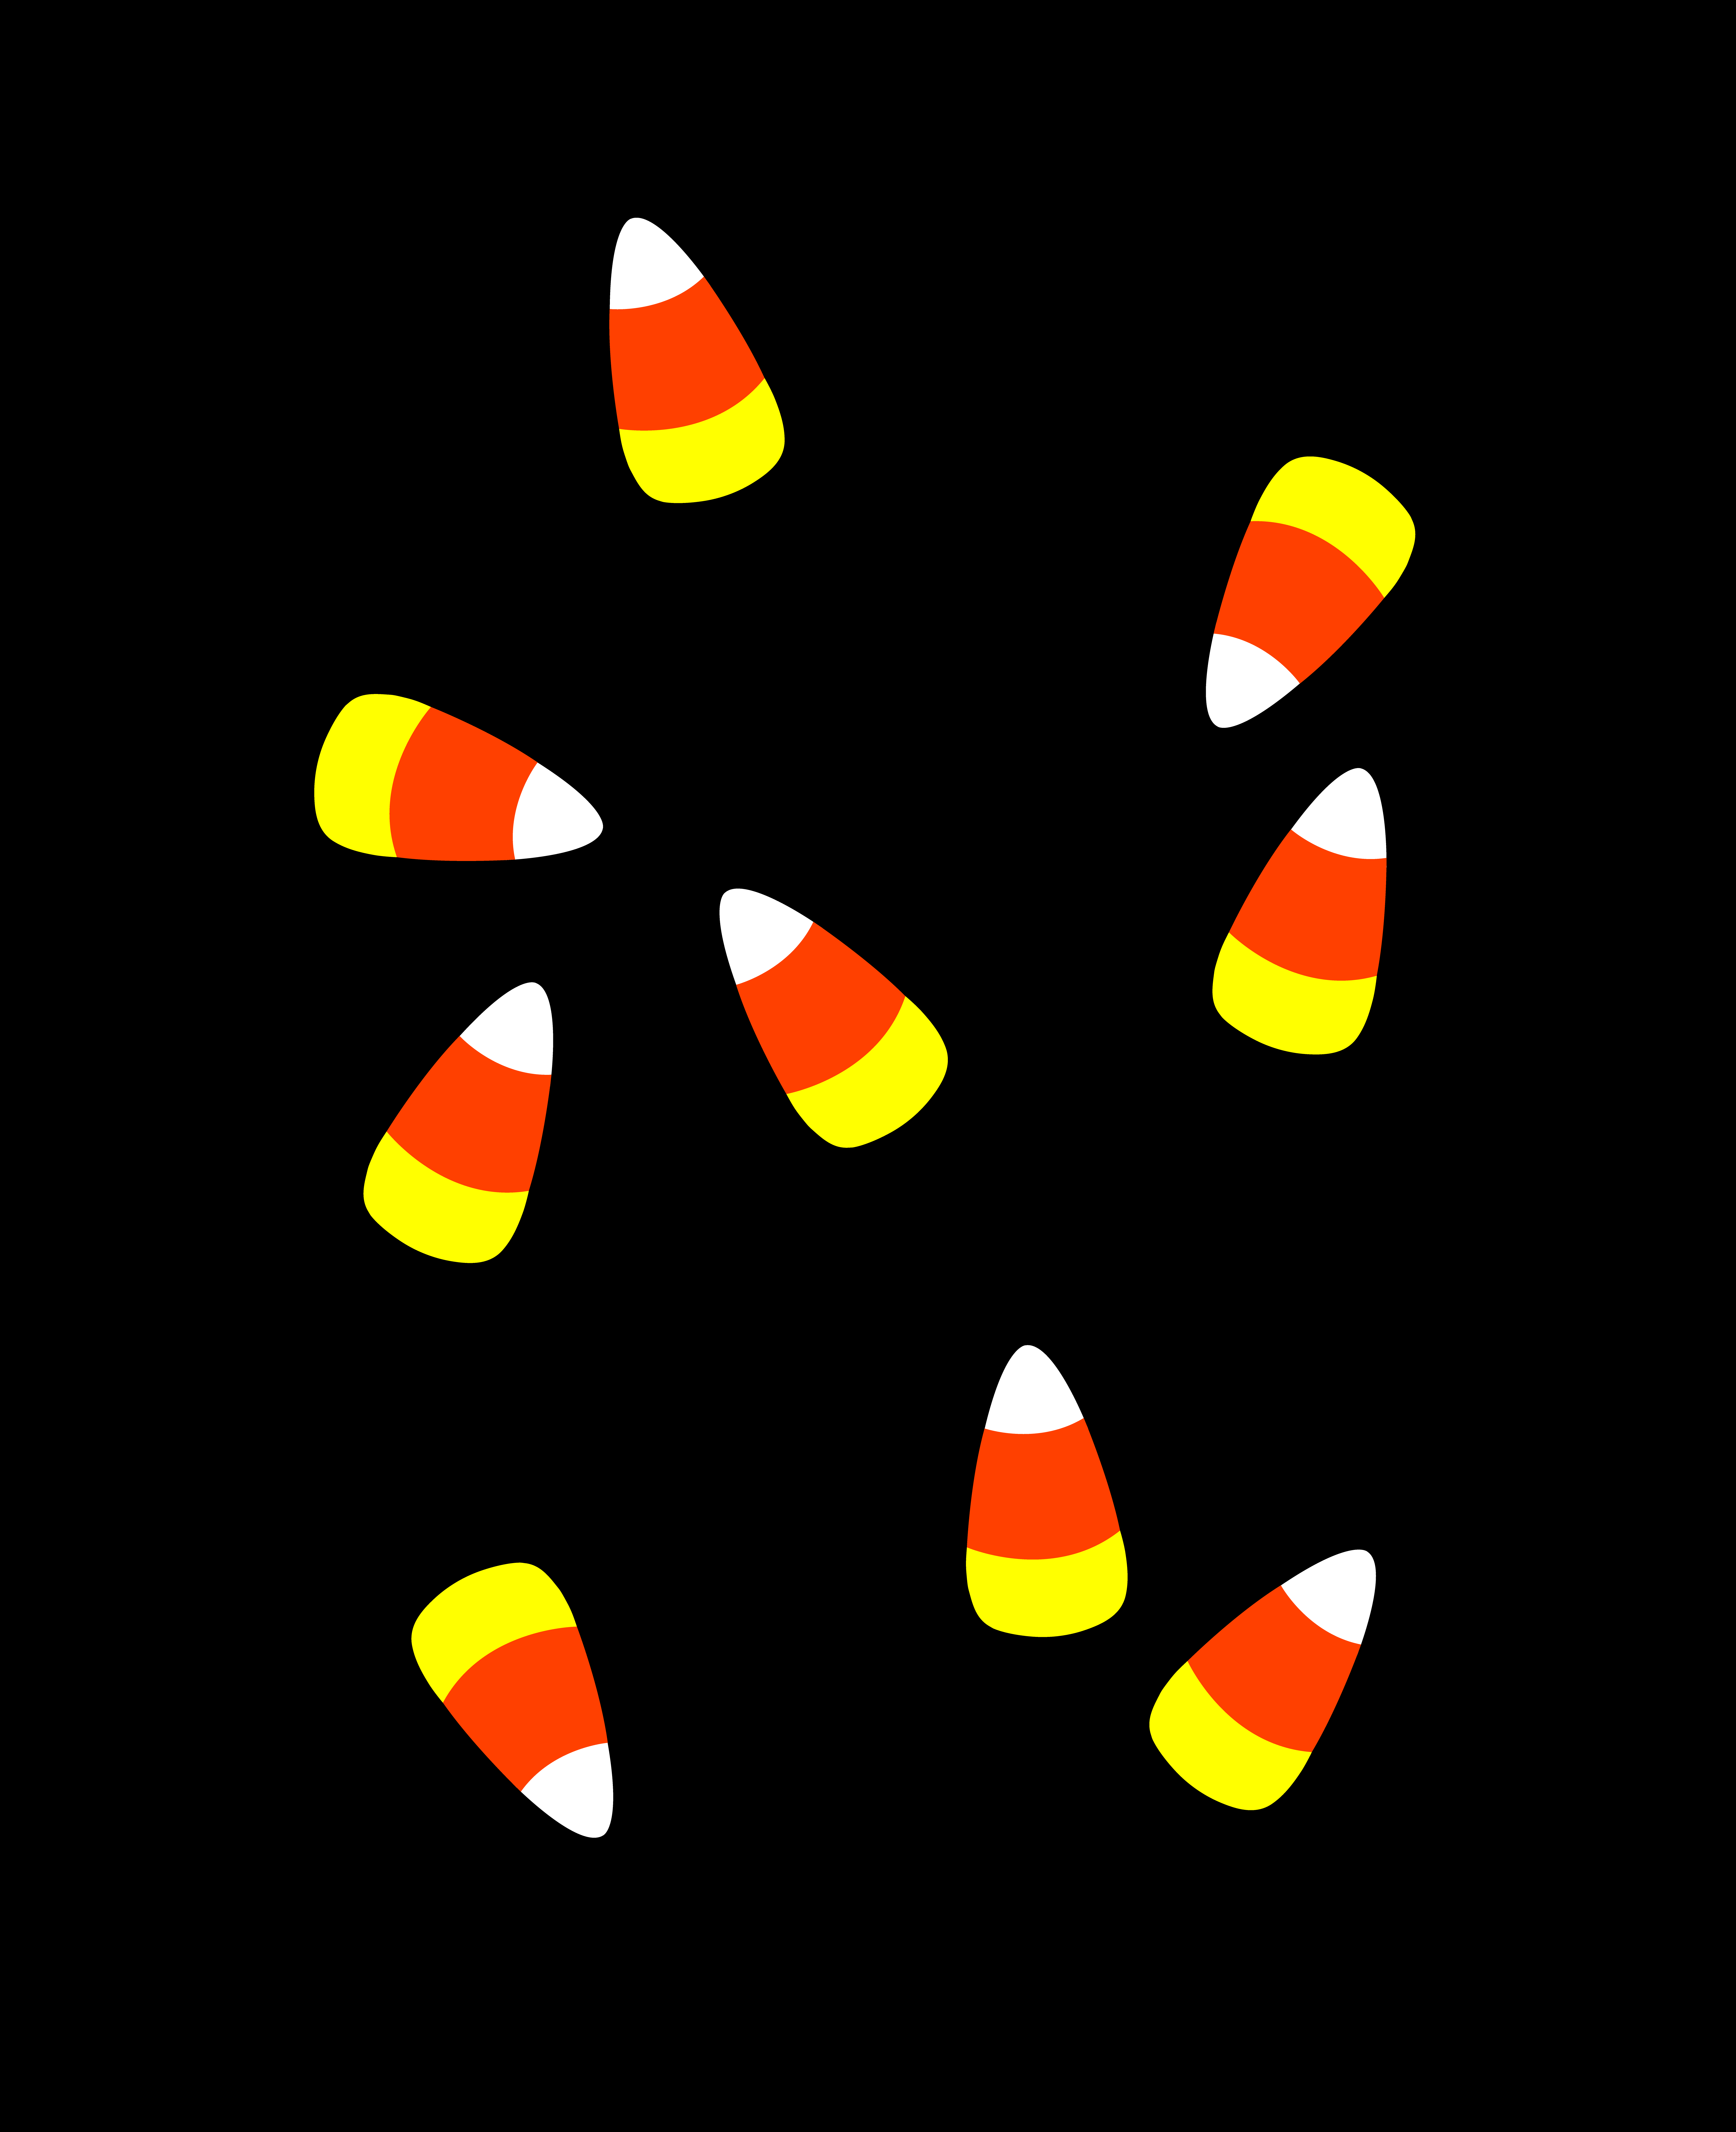 7079x8694 Free Candy Corn Images, Download Free Clip Art, Free Clip ...